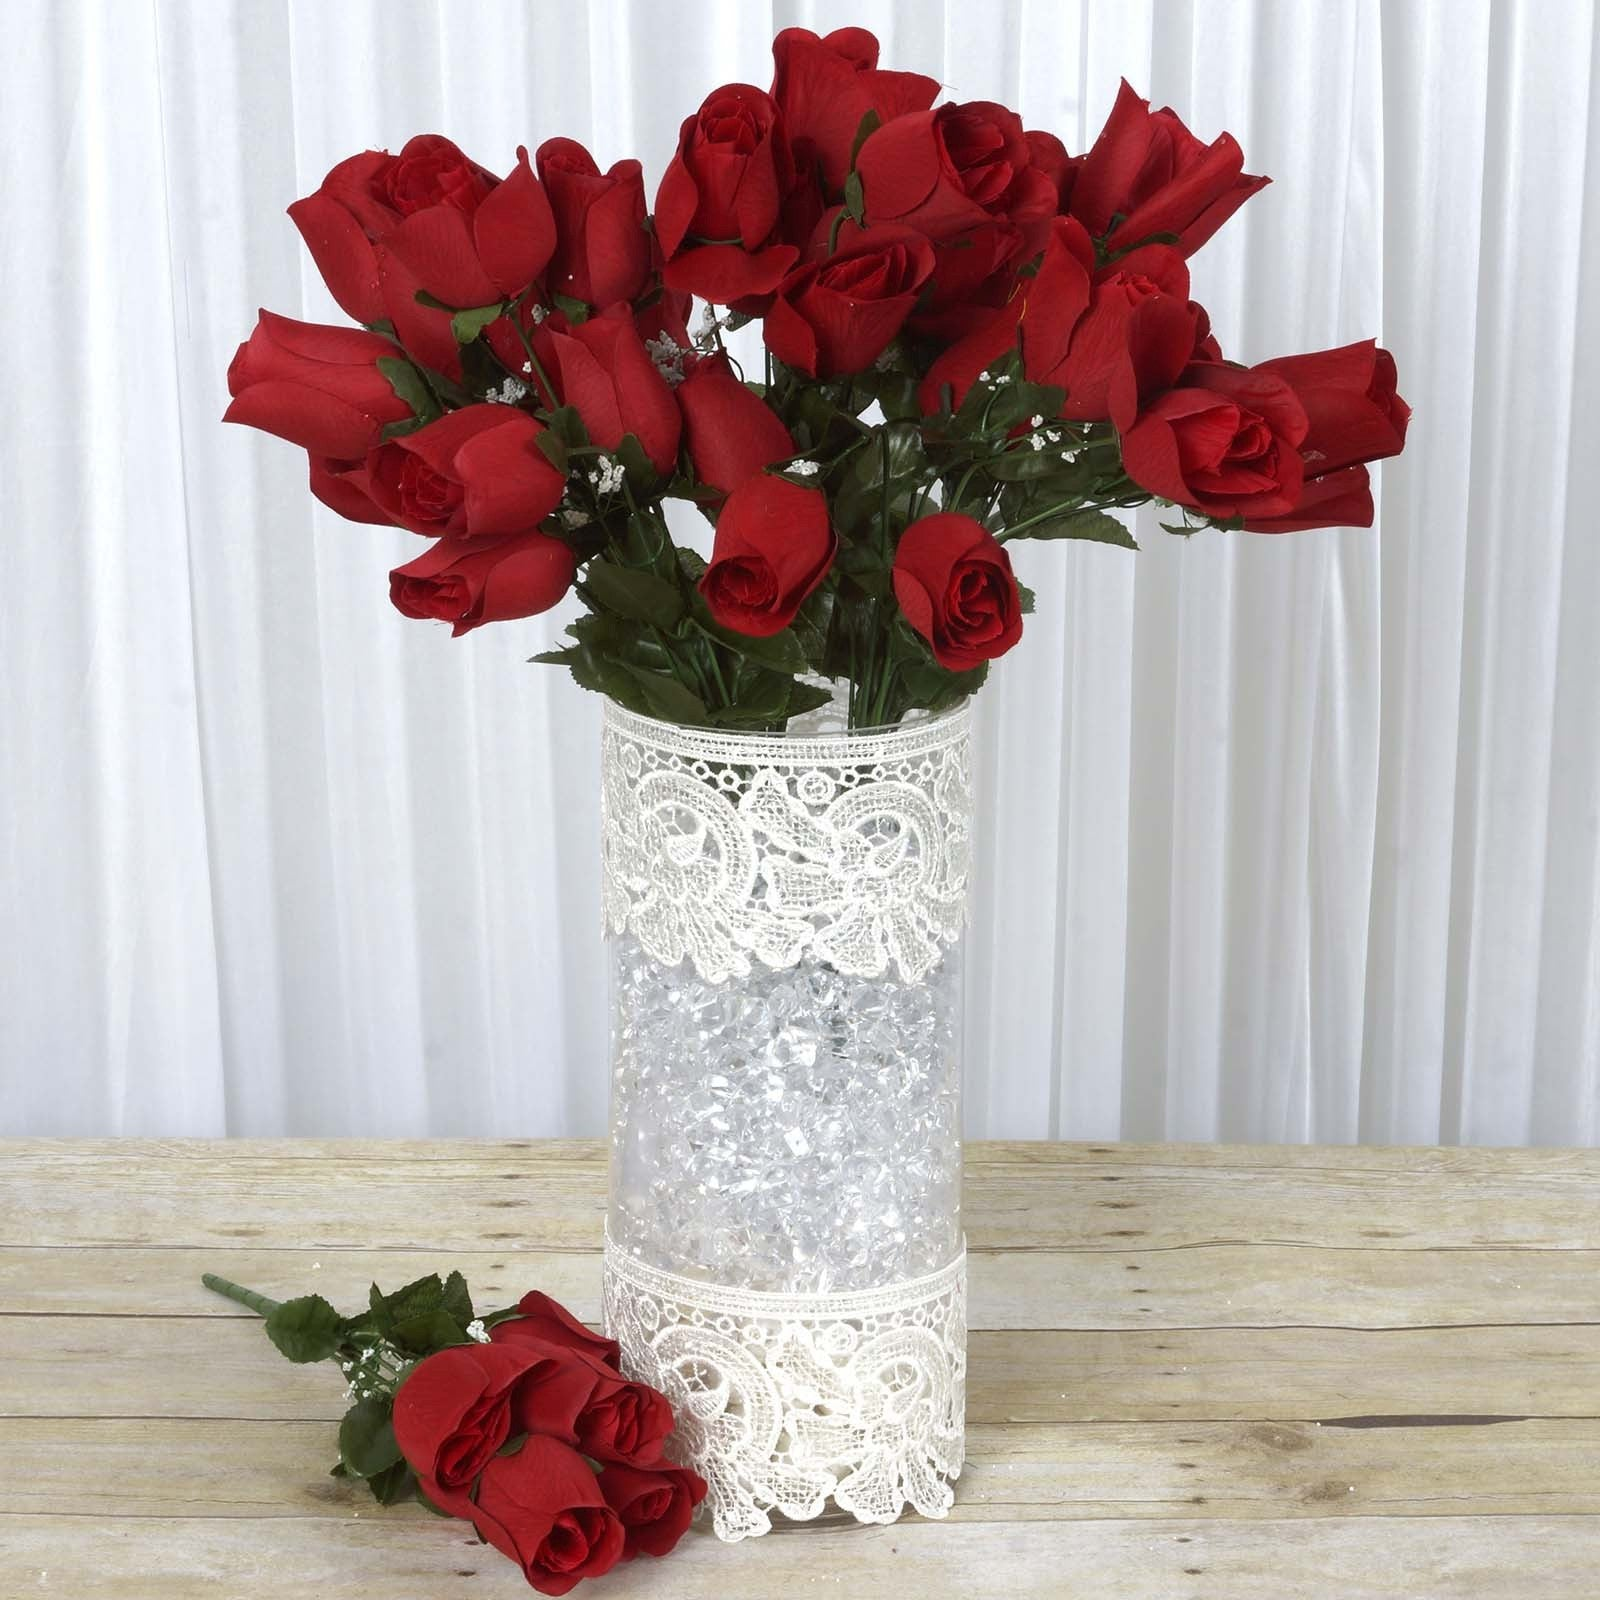 12 Bush 84 Pcs Red Artificial Velvet Rose Bud Flowers Bridal Bouquet